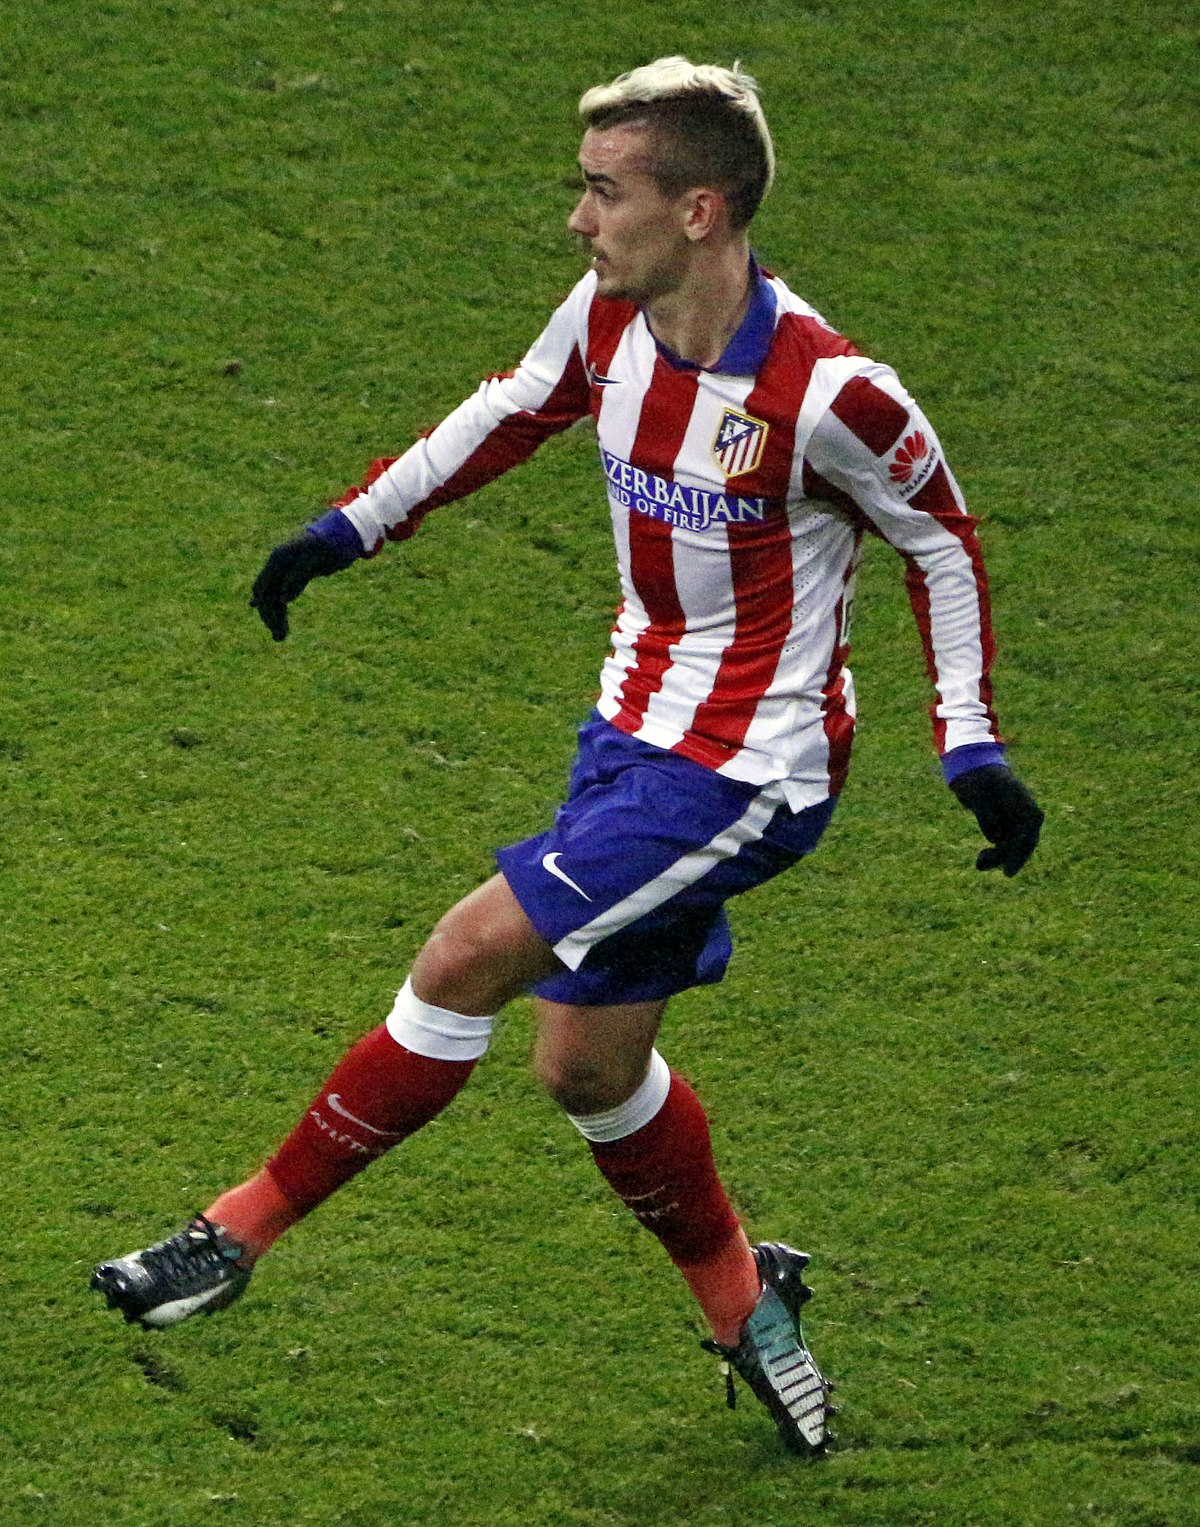 Atletico Madrid will be without star player Antoine Griezmann this season.